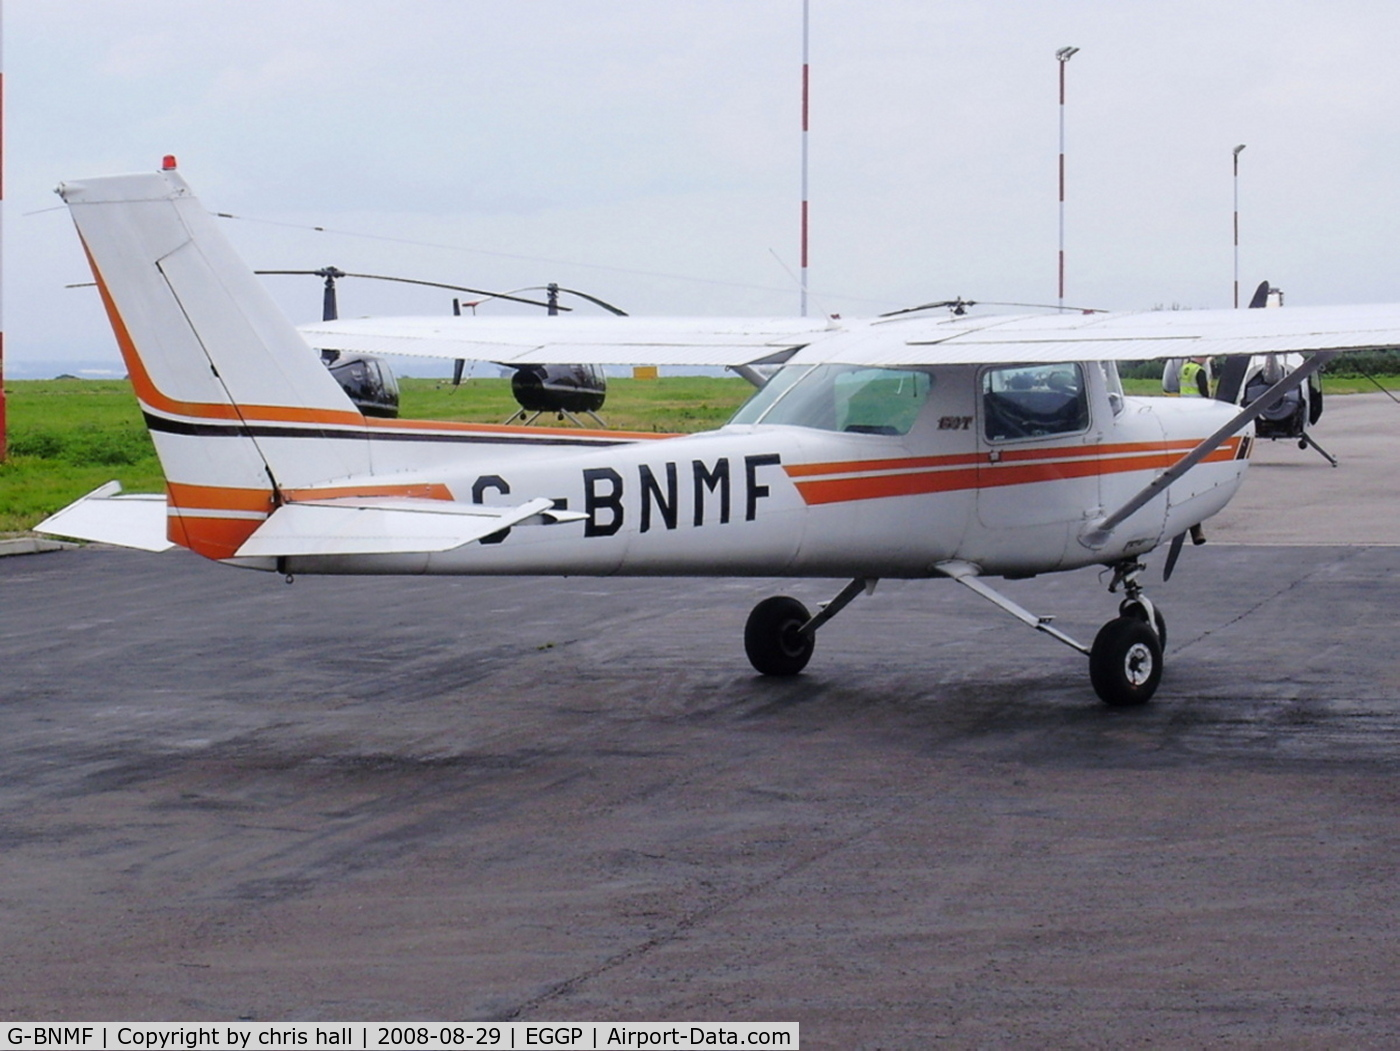 G-BNMF, 1982 Cessna 152 C/N 152-85563, (cn 152-85563) Previously N93858